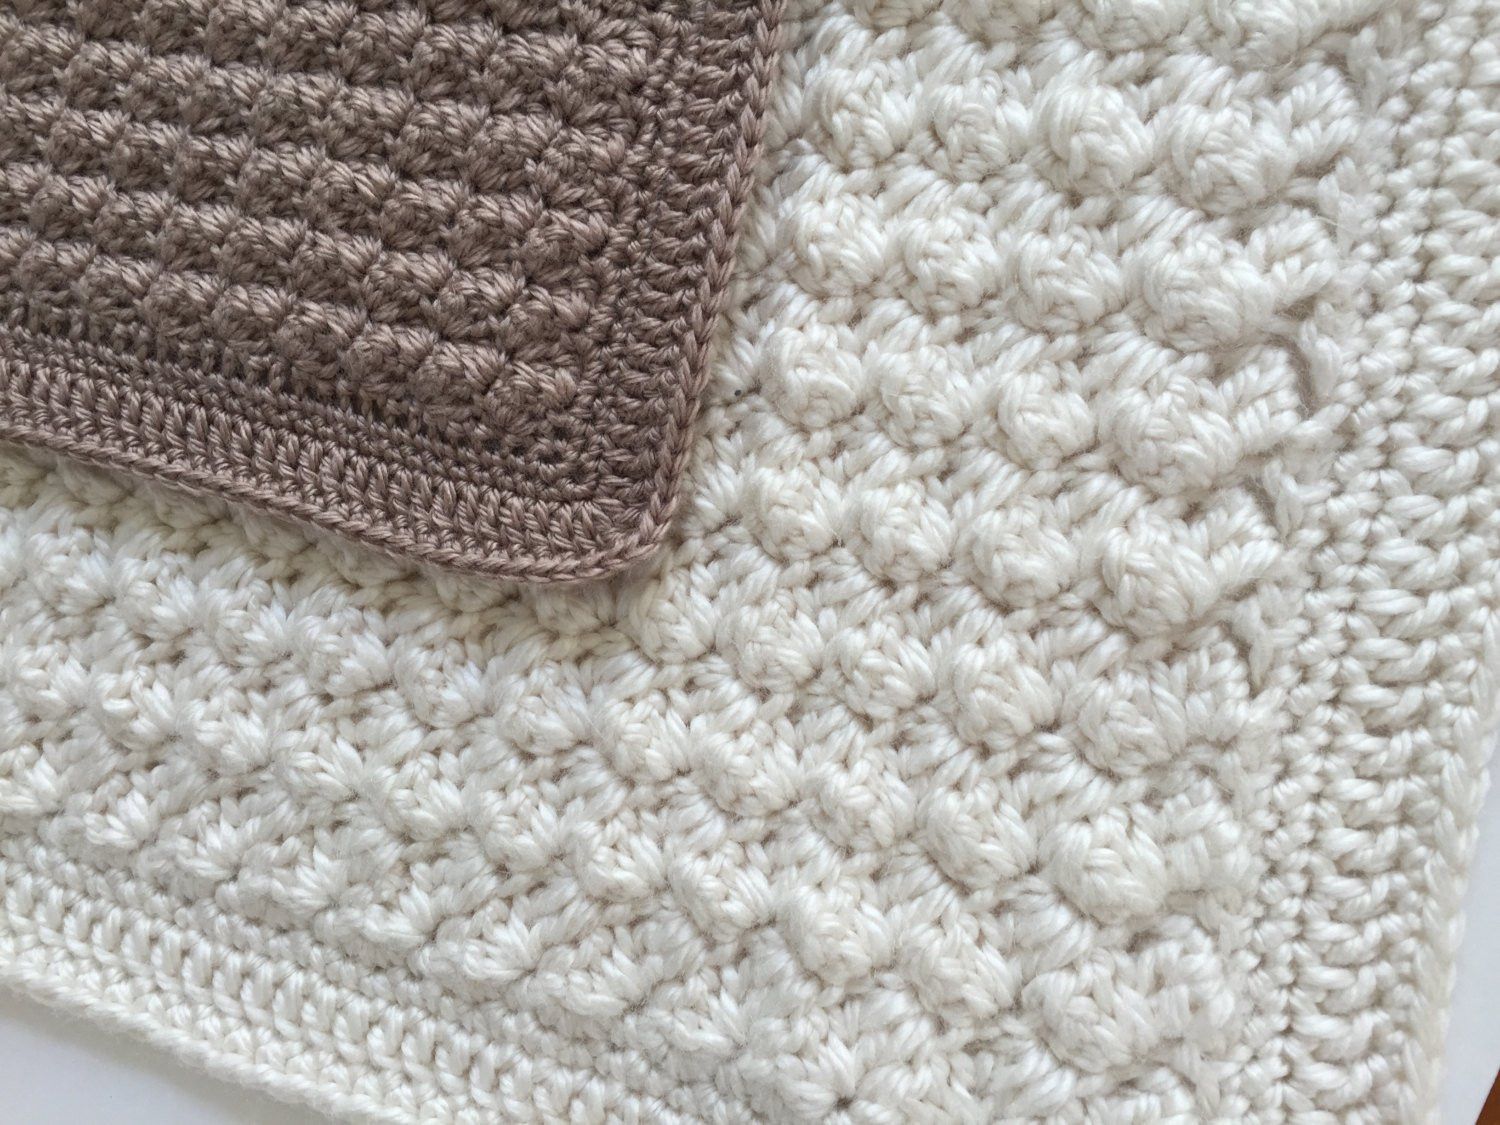 Fresh Chunky Crochet Baby Blanket Pattern Chunky Yarn Crochet Blanket Of Perfect 50 Pictures Chunky Yarn Crochet Blanket